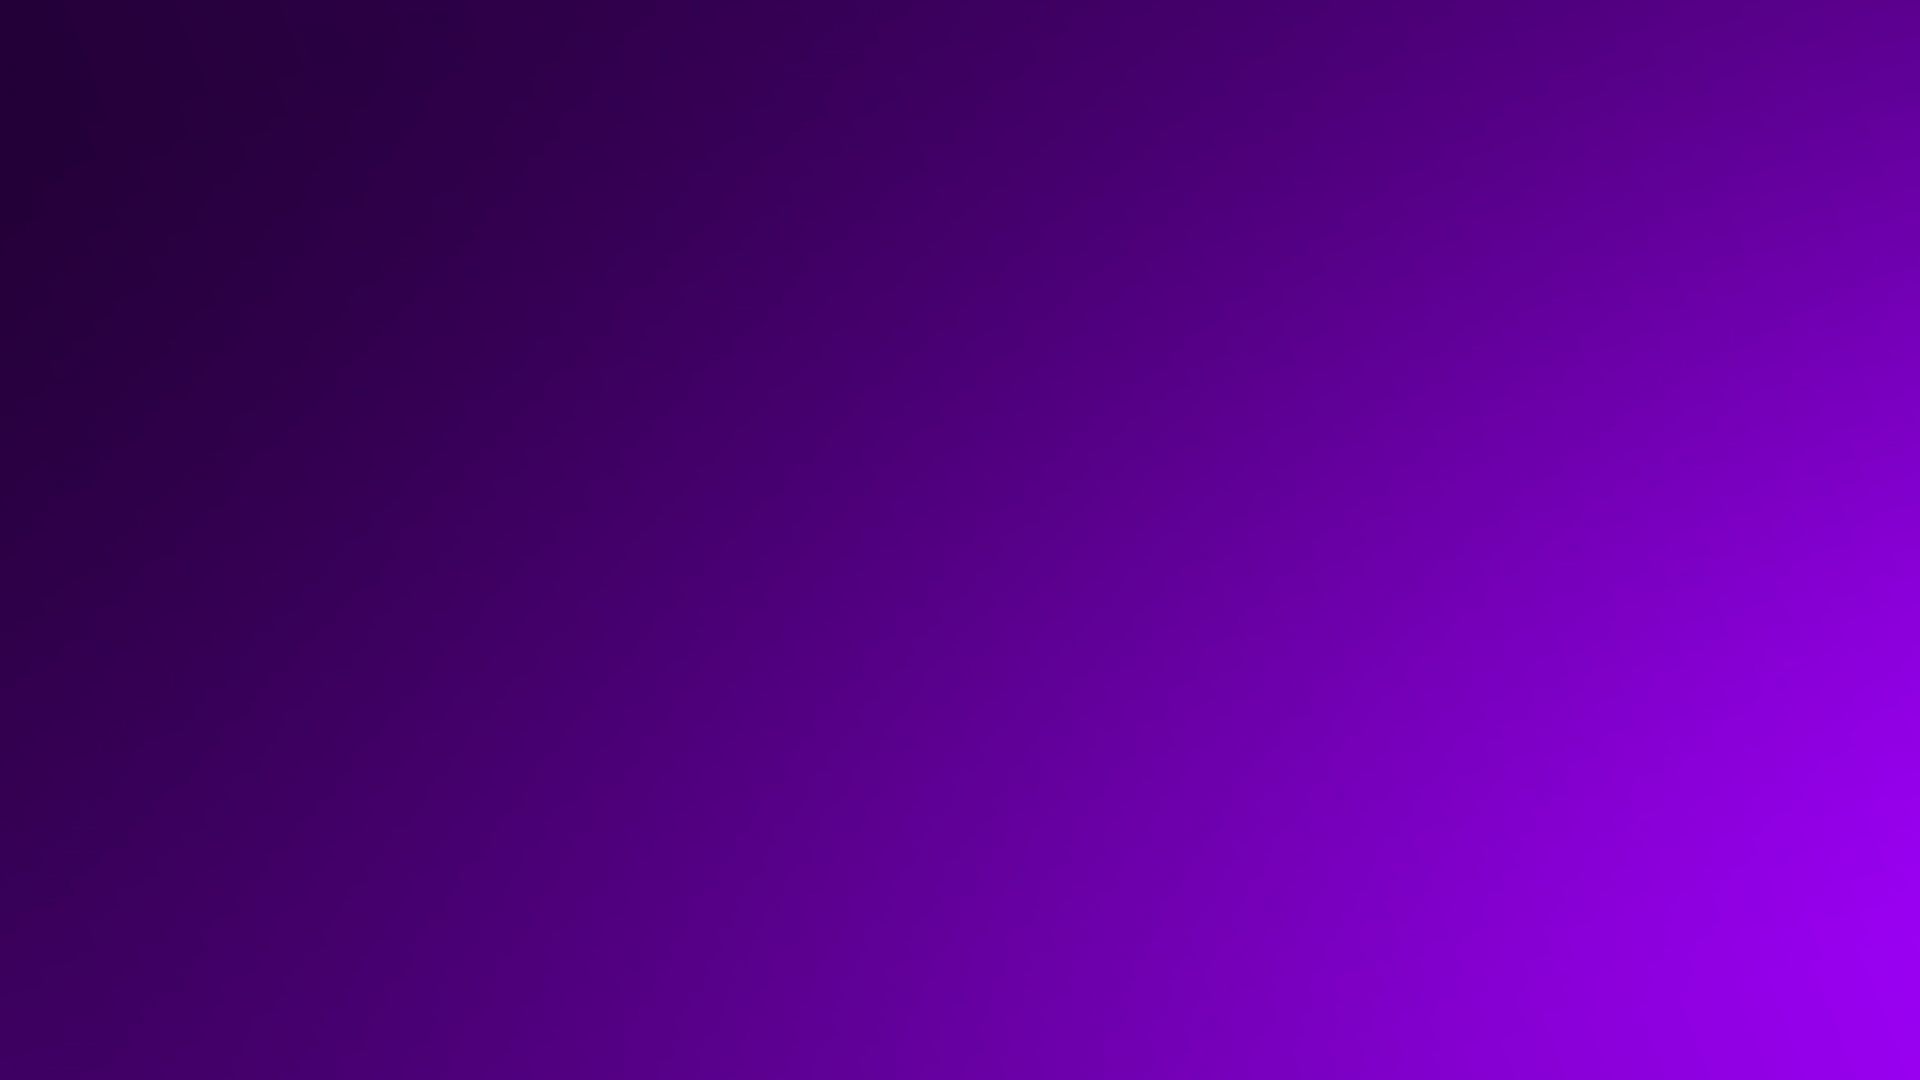 Download Wallpaper 1920x1080 Background Solid Purple Full HD 1080p